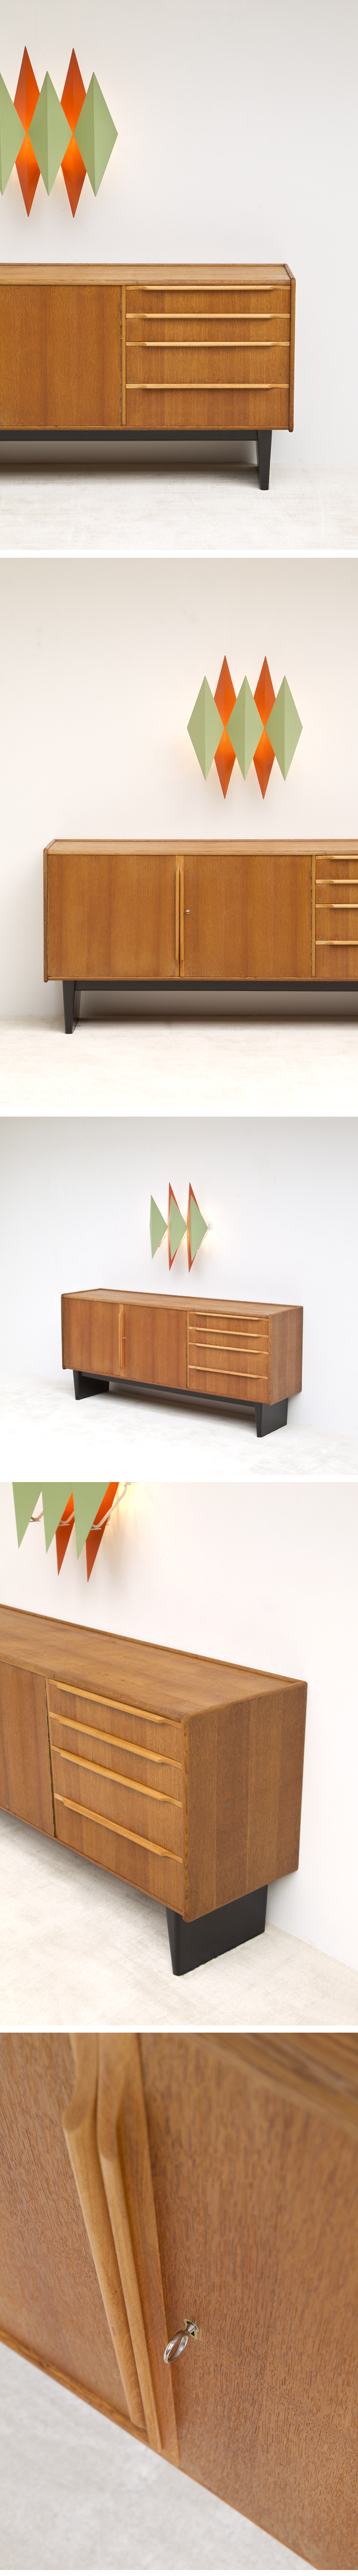 CEES BRAAKMAN, SIDEBOARD, OAK, 1950s, dutch